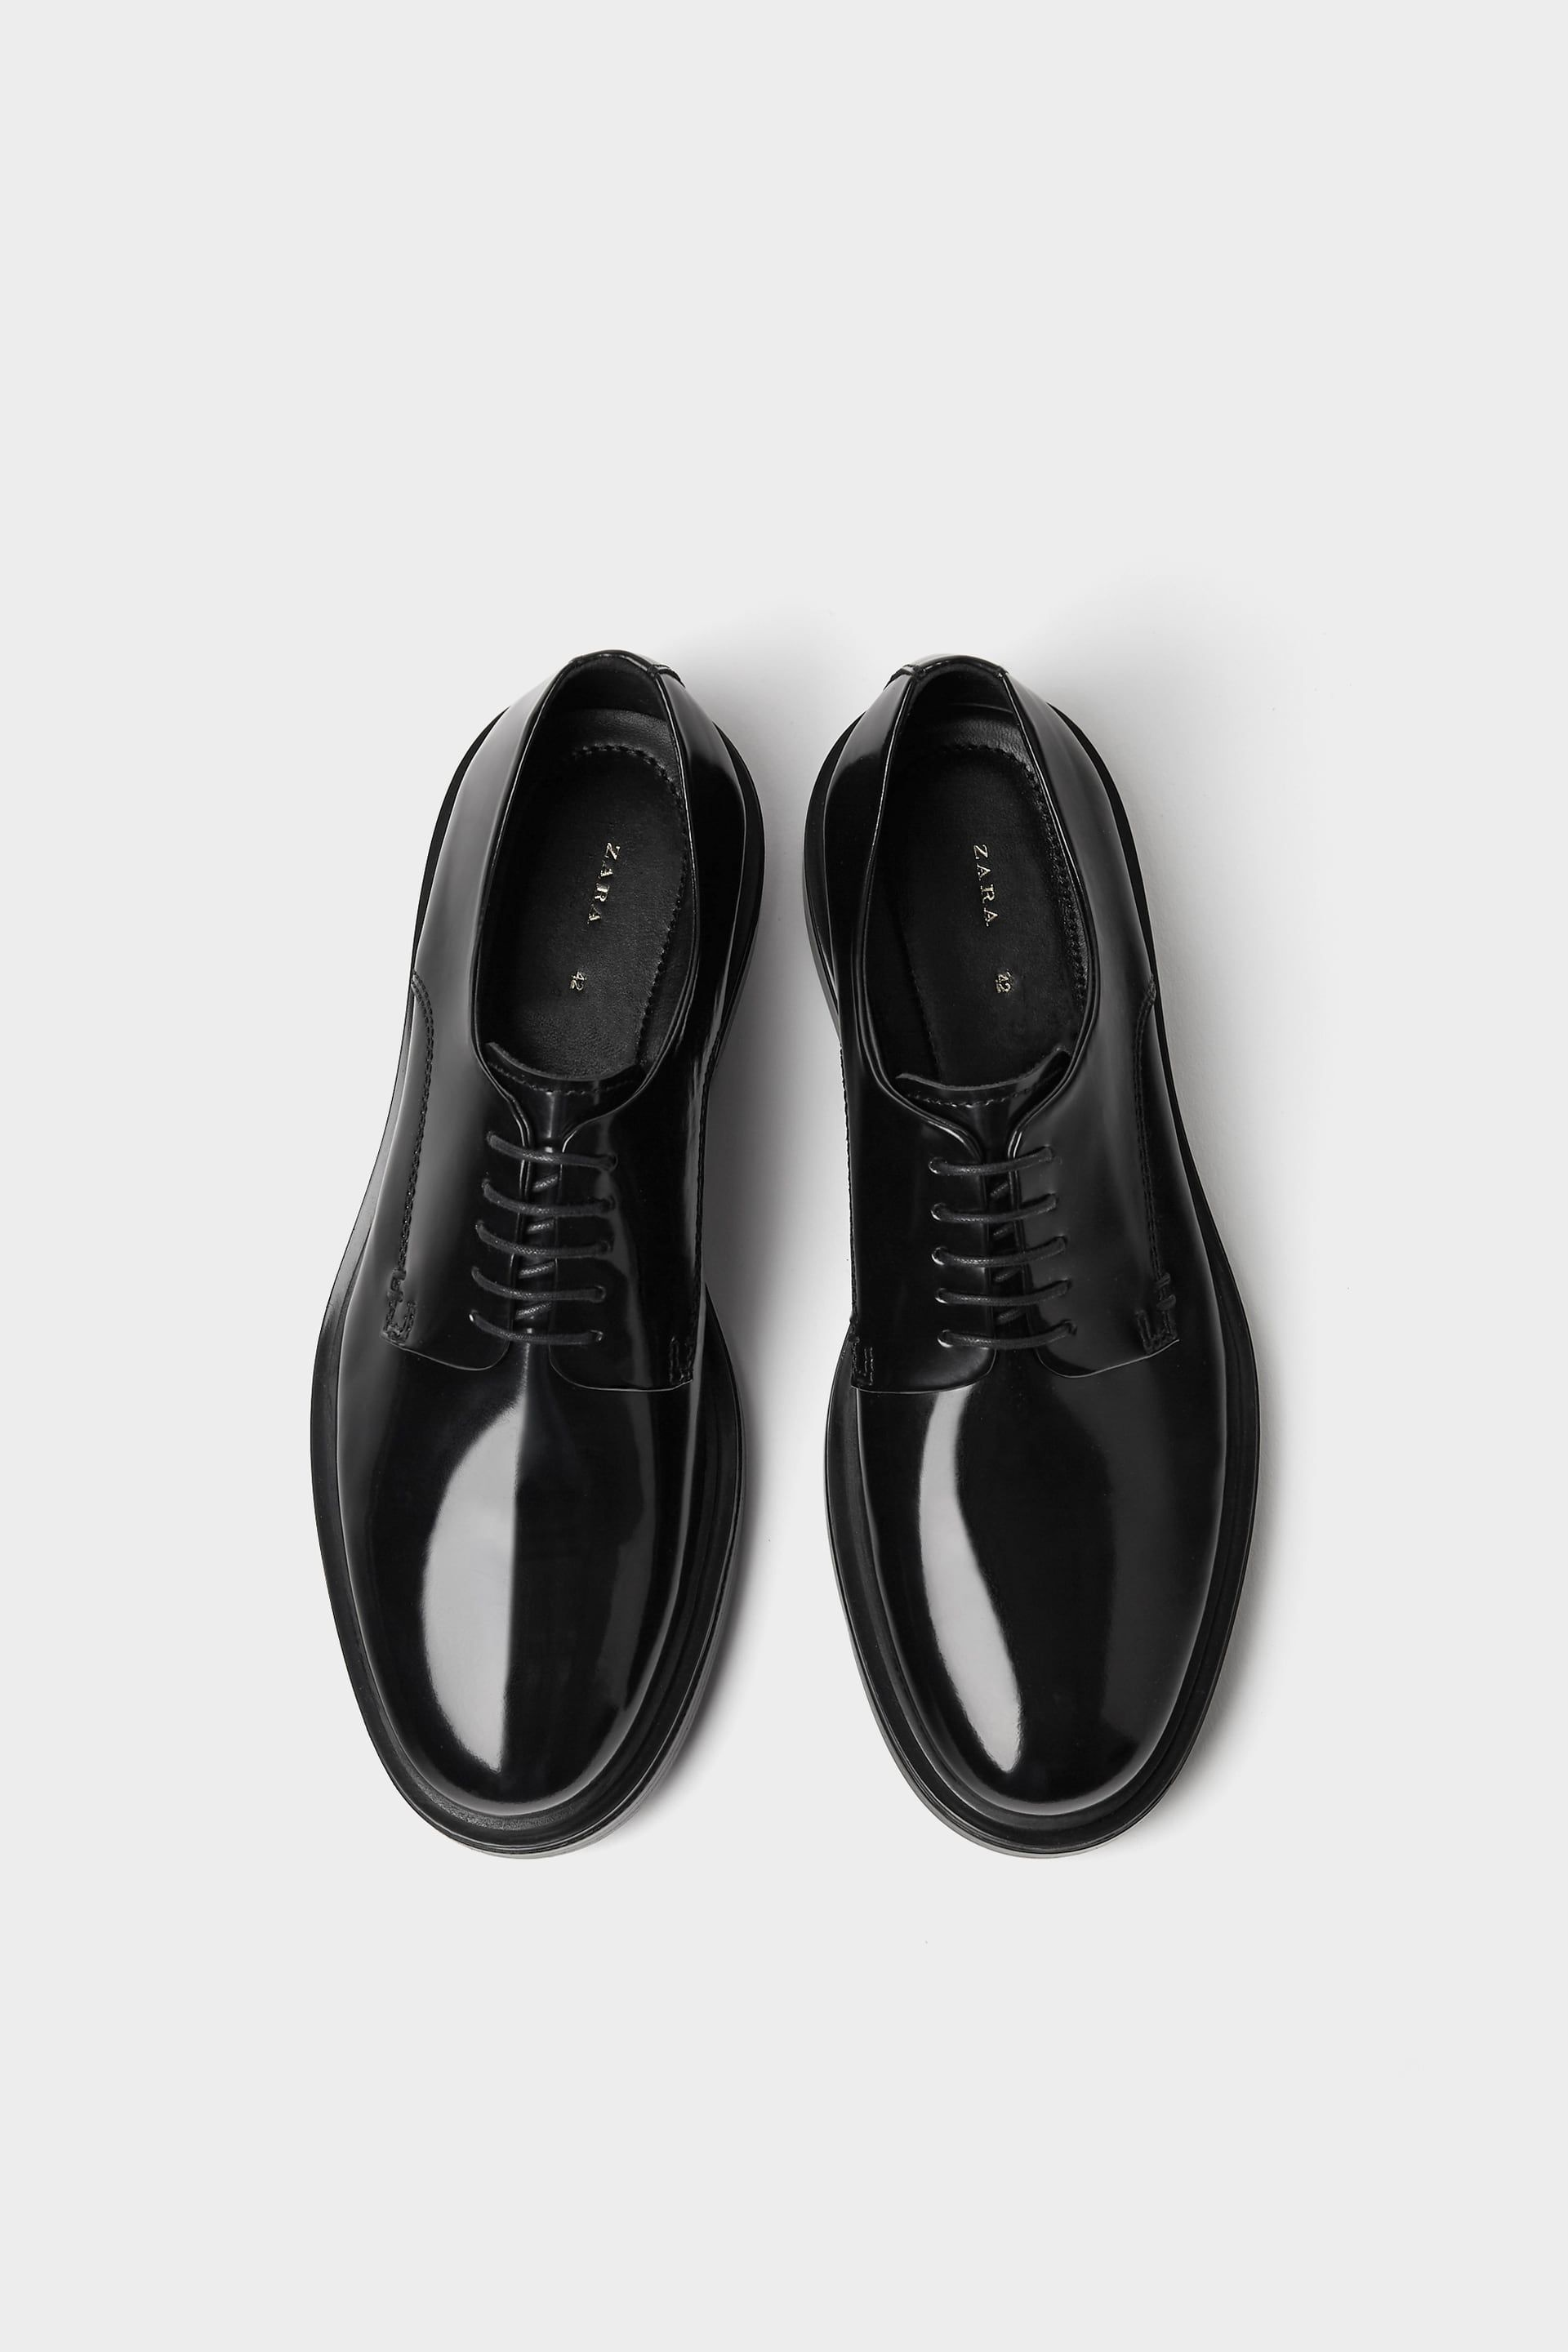 2adc68d03d4 Zara GLOSSY FINISH LEATHER SHOES $129. Leather derby shoe. Glossy ...